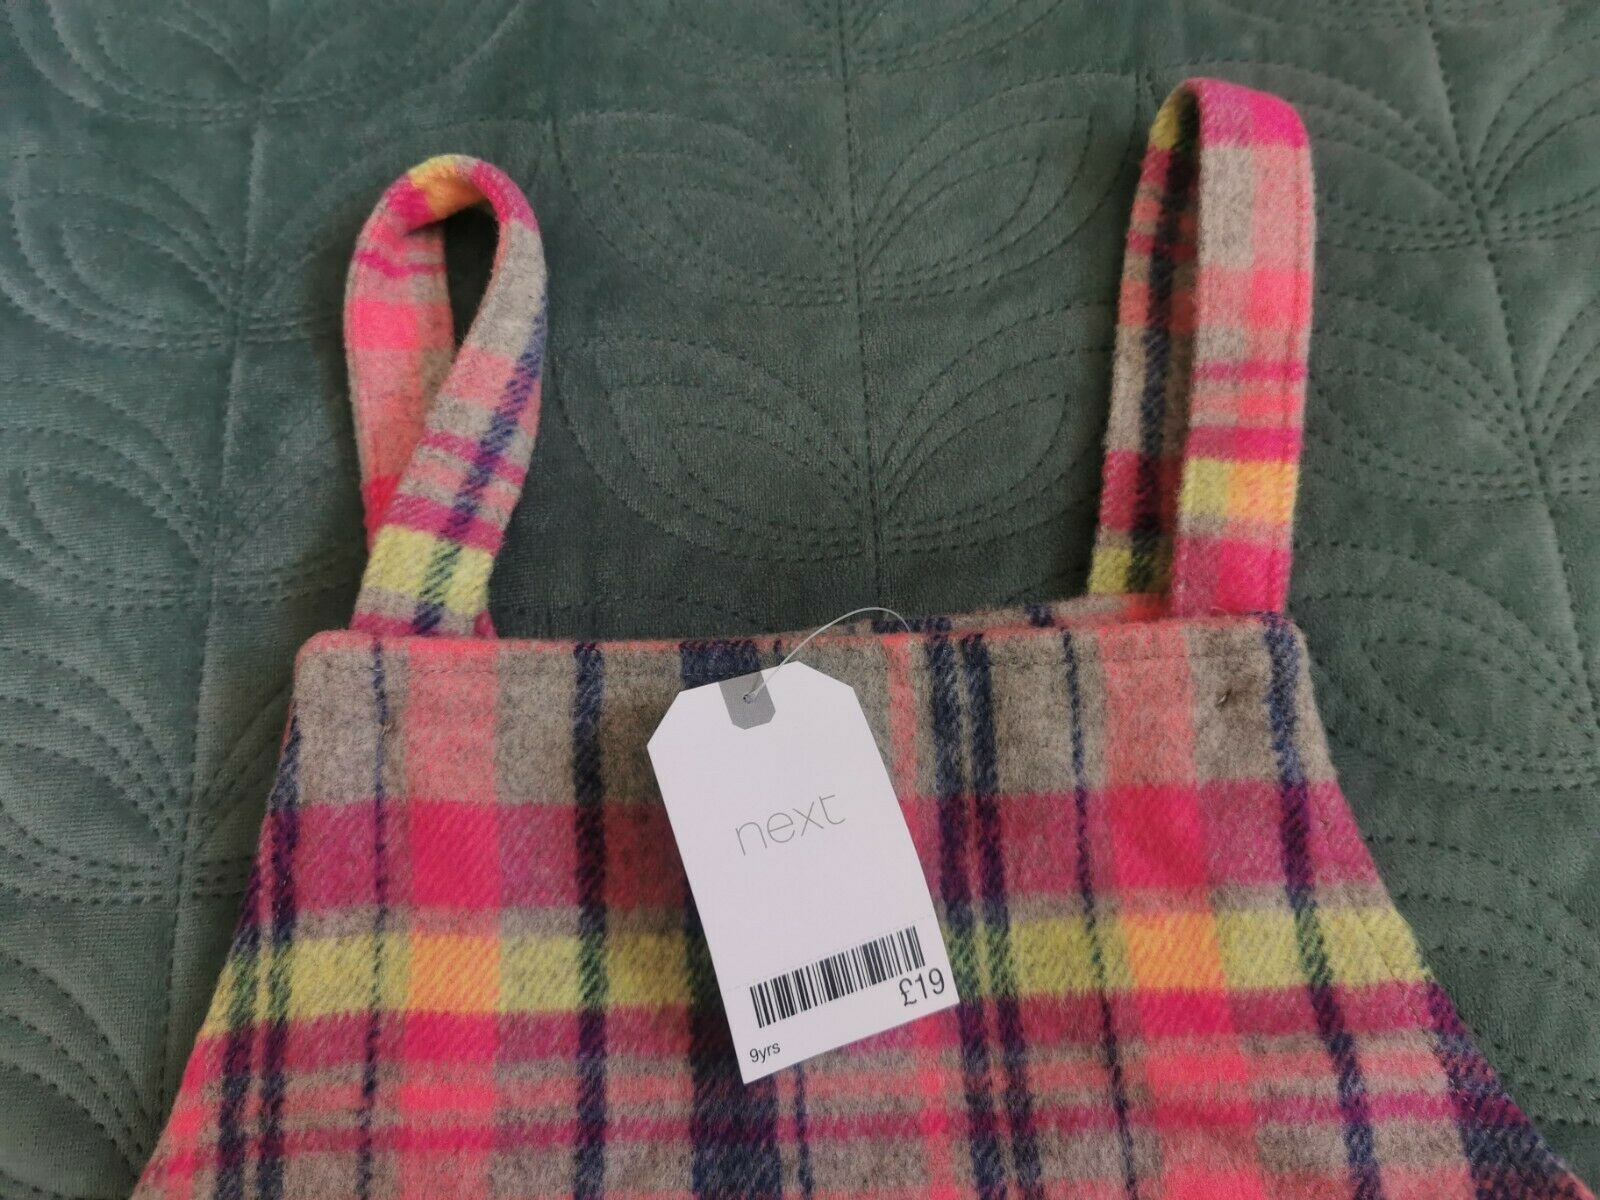 * Next Neon Check Pinafore size 9Y Pink Yellow Bright Warm Wool Blend